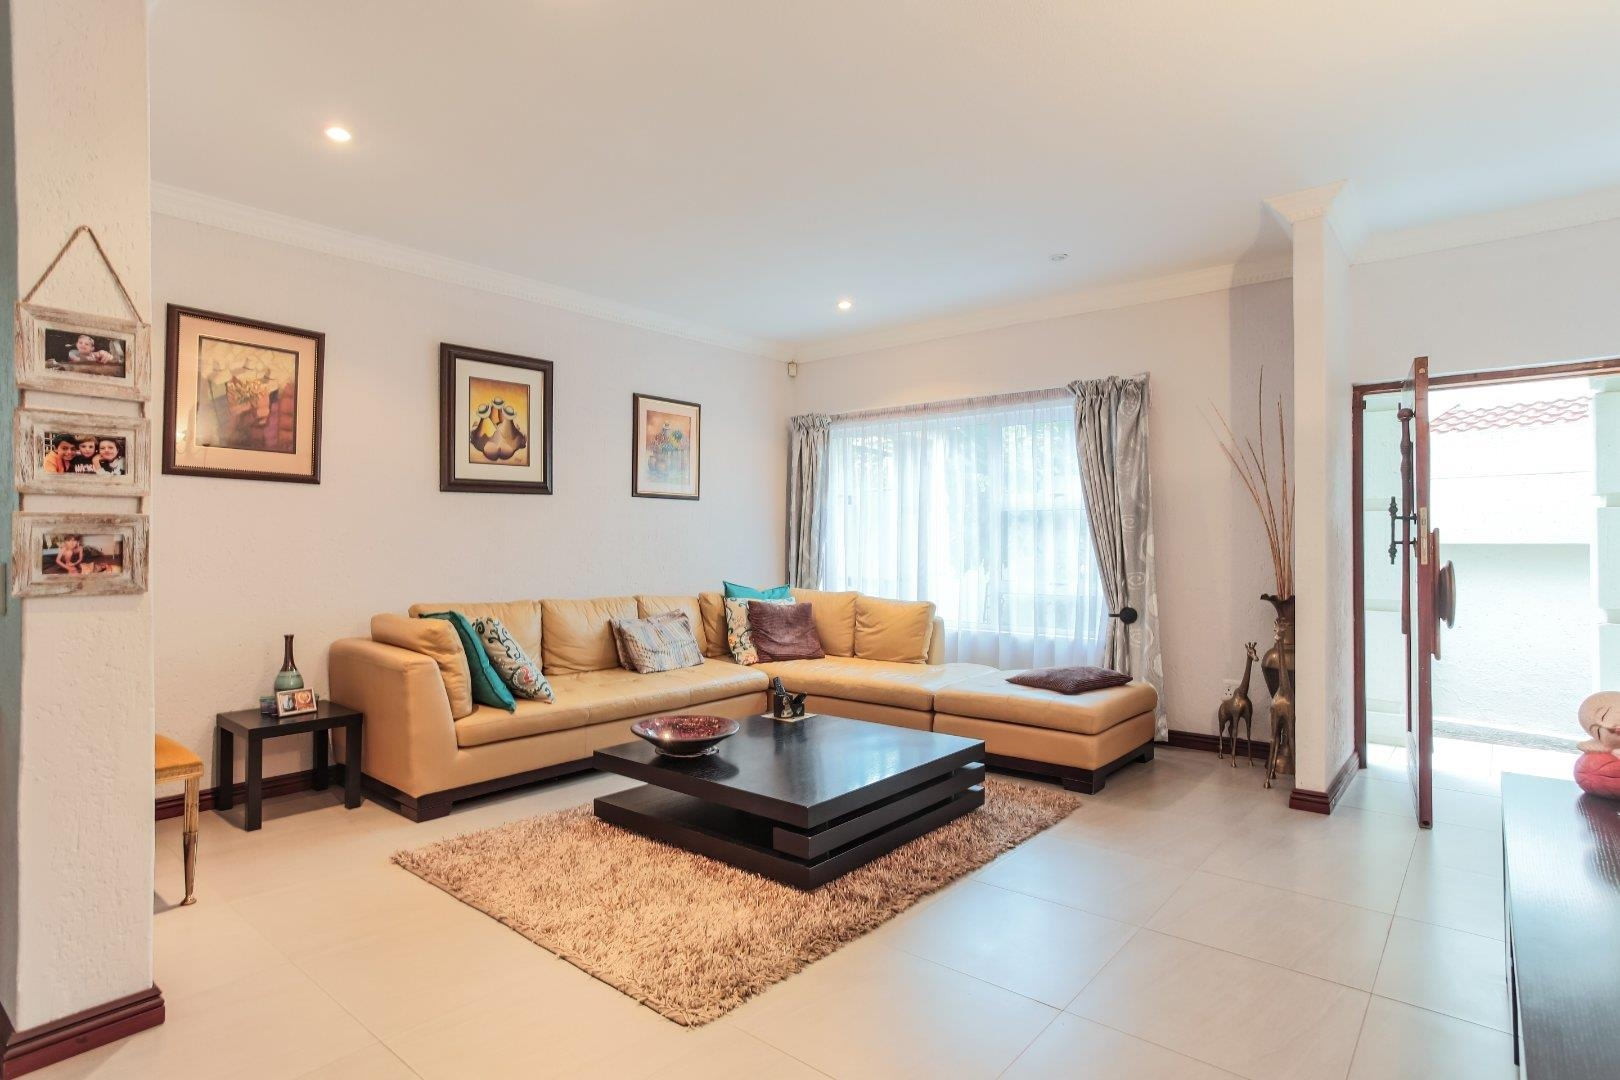 4 Bedroom House in Gallo Manor, Sandton For Sale for R 3,200,000